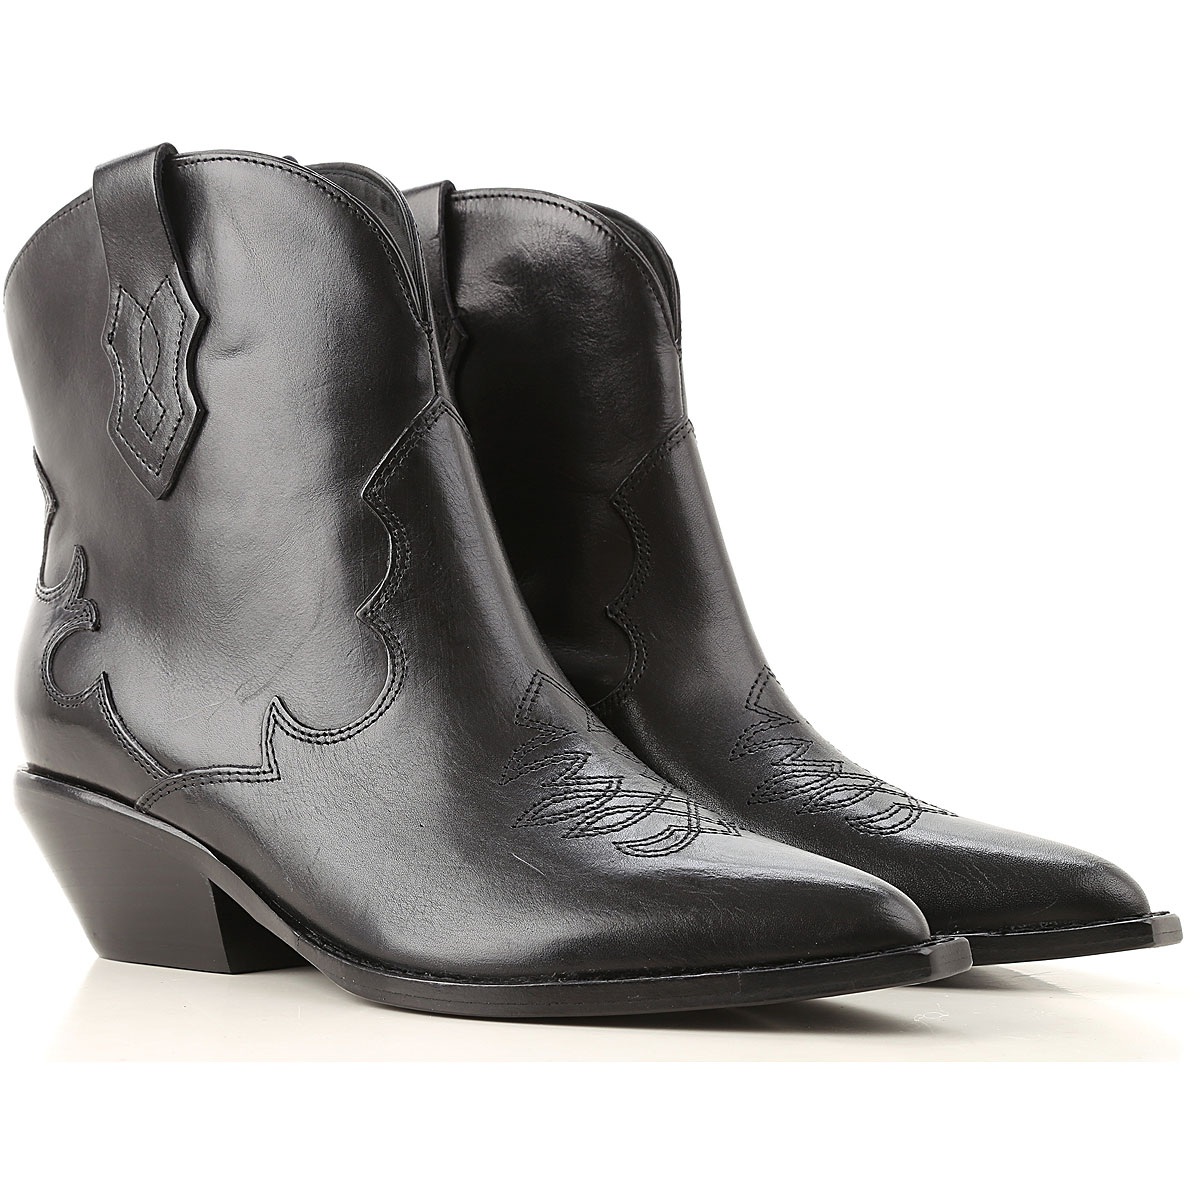 Sigerson Morrison Boots for Women, Booties On Sale, Black, Leather, 2019, 10 7